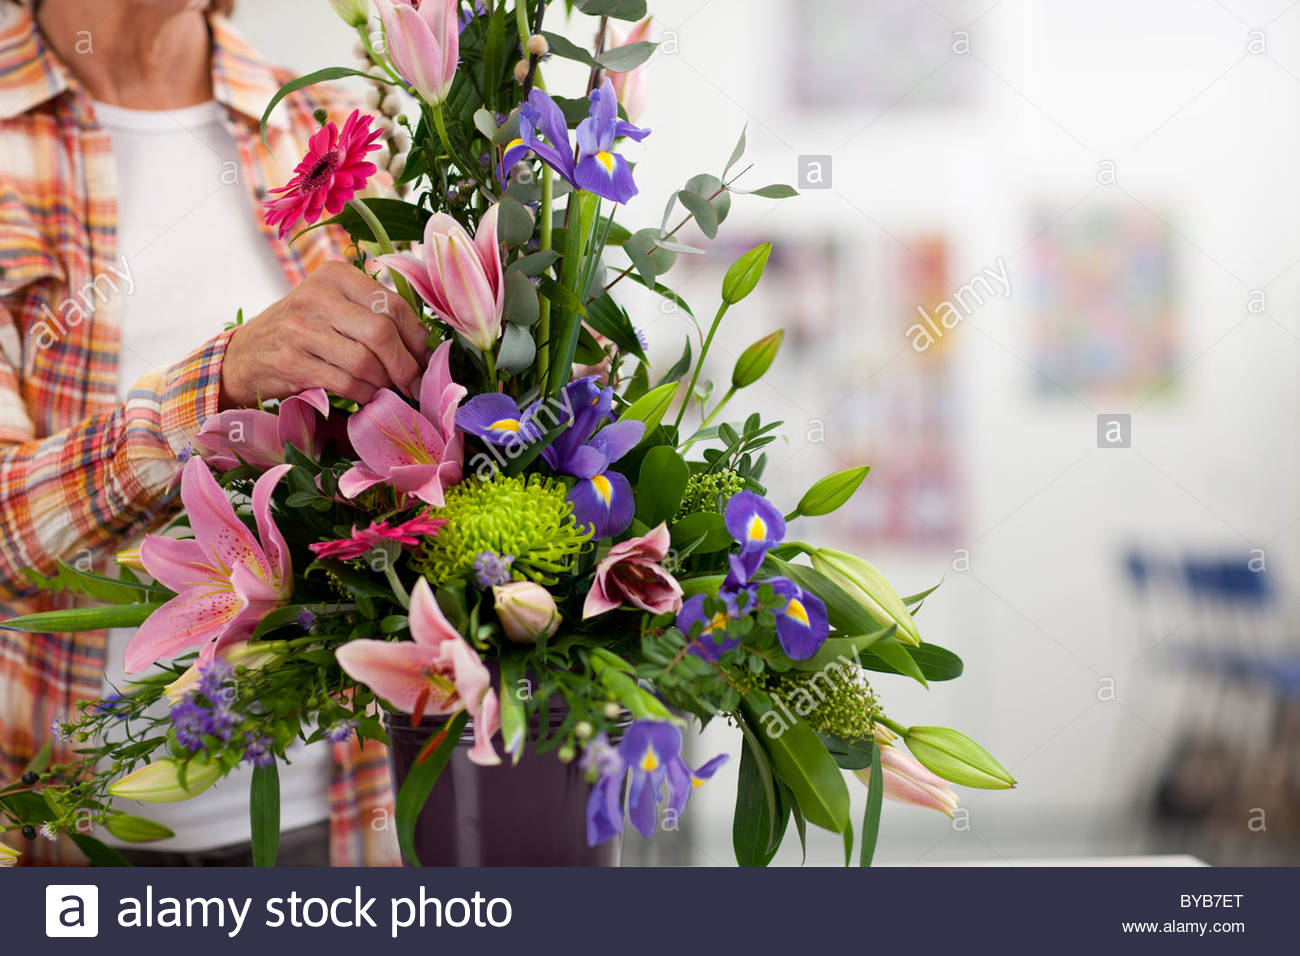 Woman putting flowers into floral arrangement - Stock Image